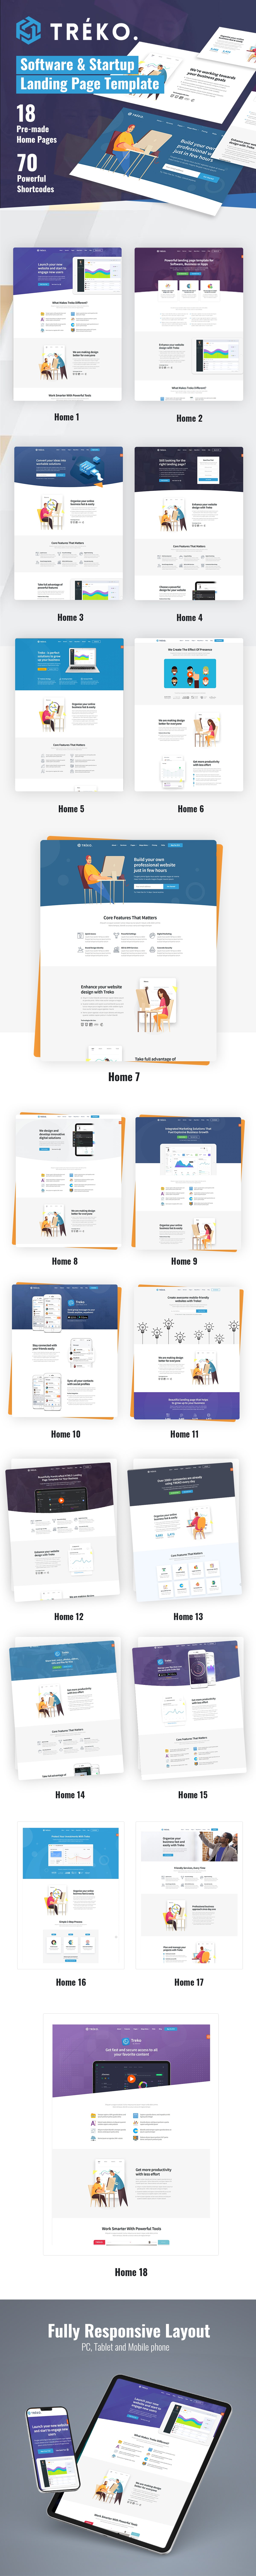 Treko - Startup and Software Landing Page template - 1